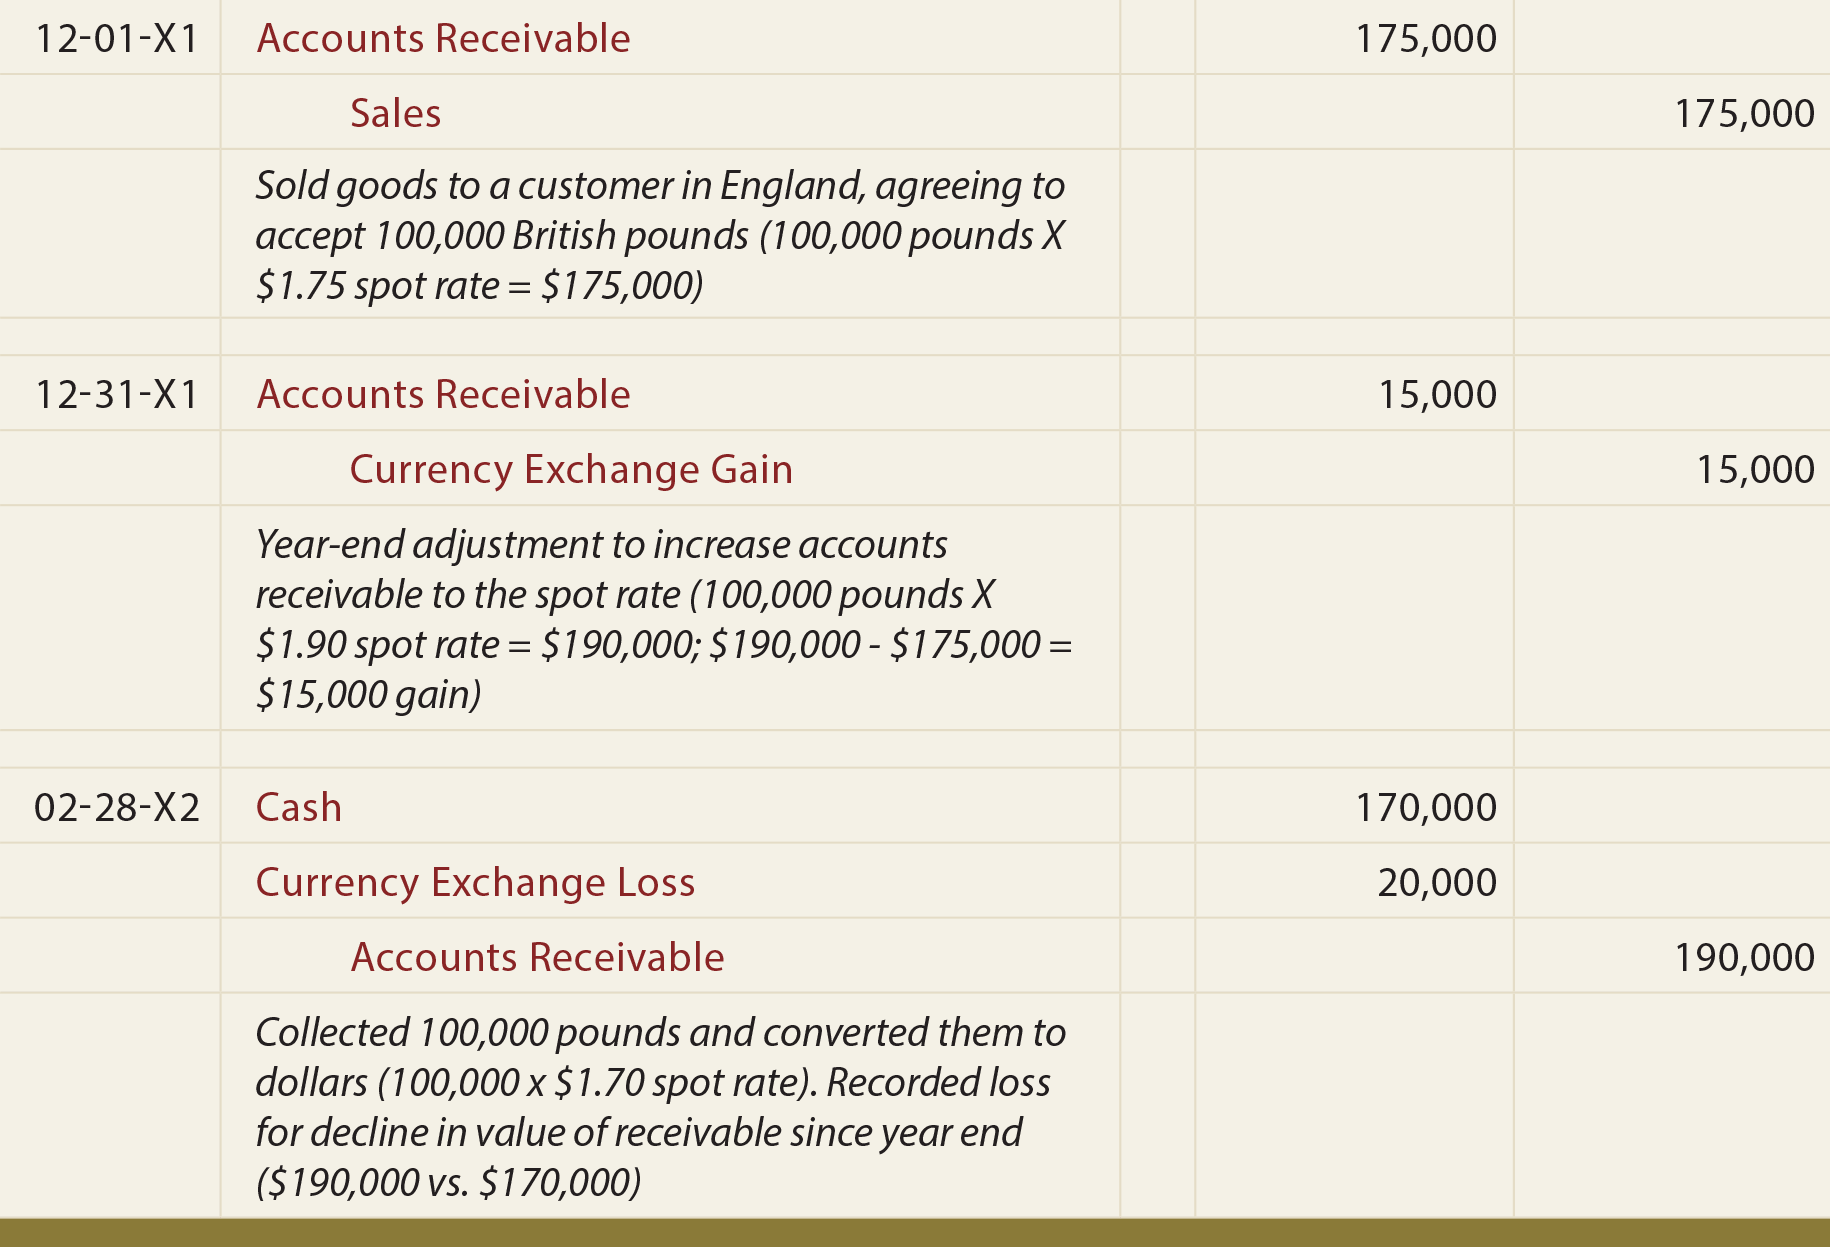 Exchange Rate Accounting - Global Trade Account Receivable